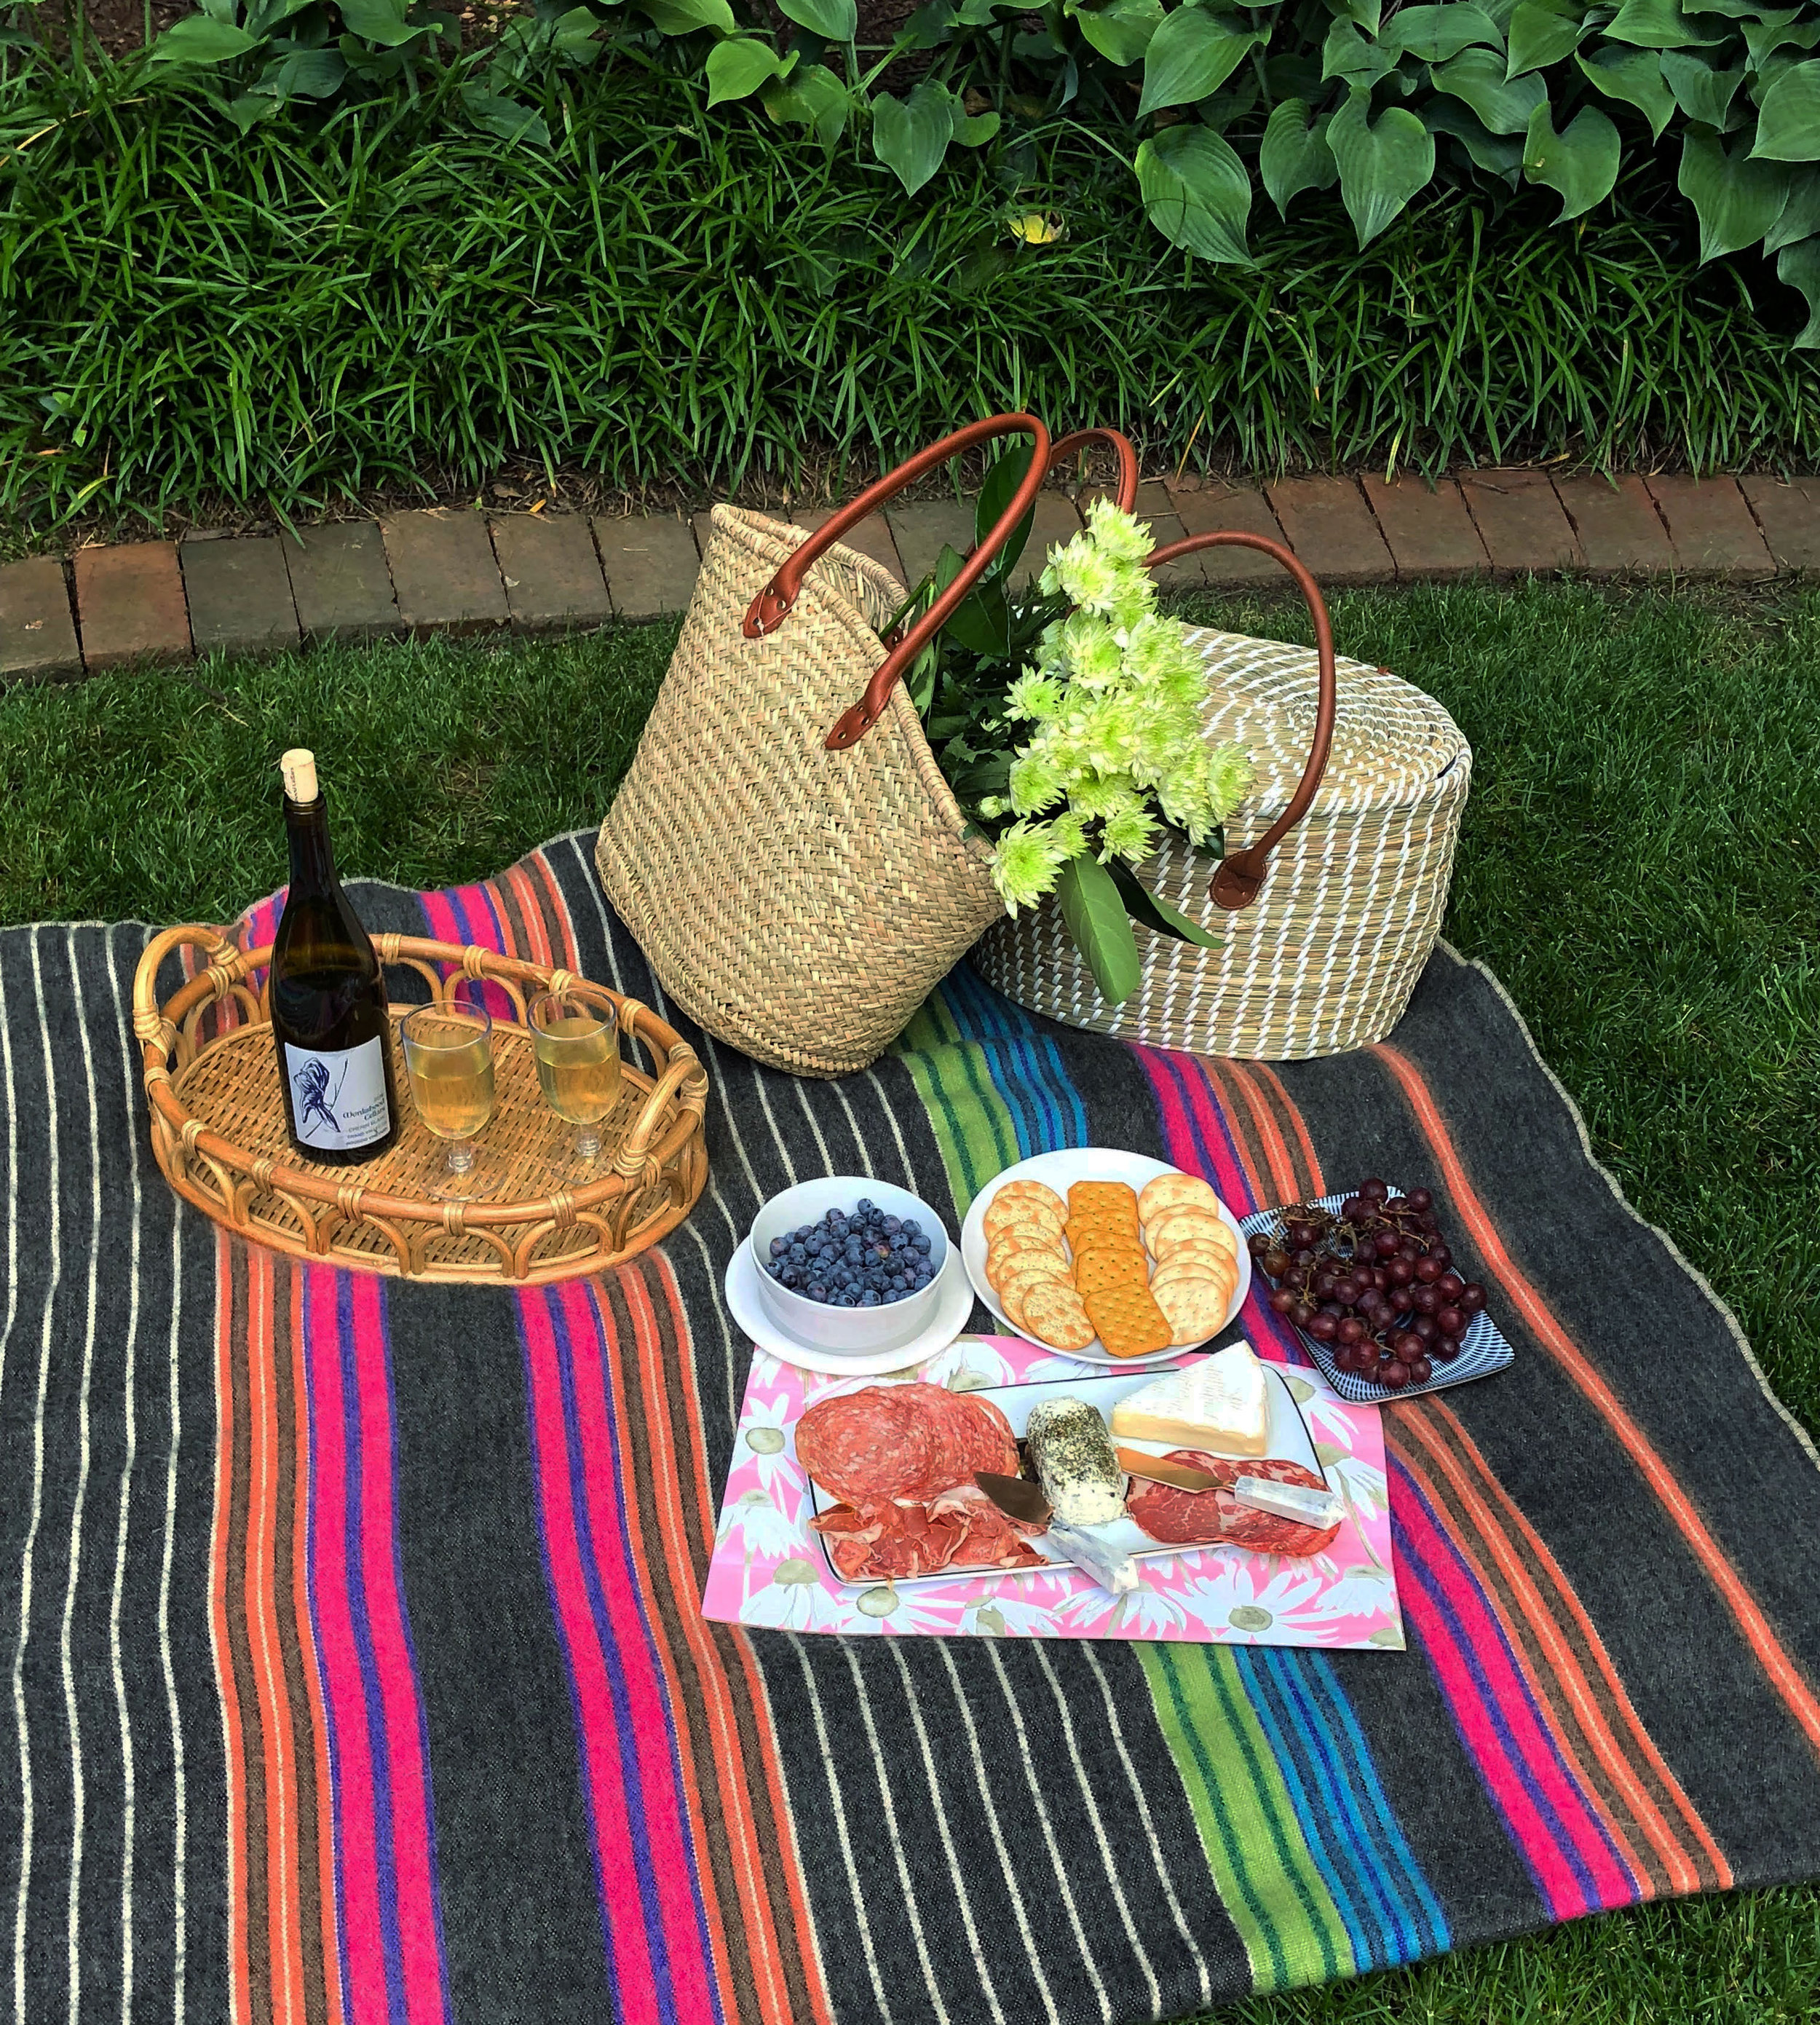 lucy-grymes-picture-perfect-picnic-finger-foods.jpg